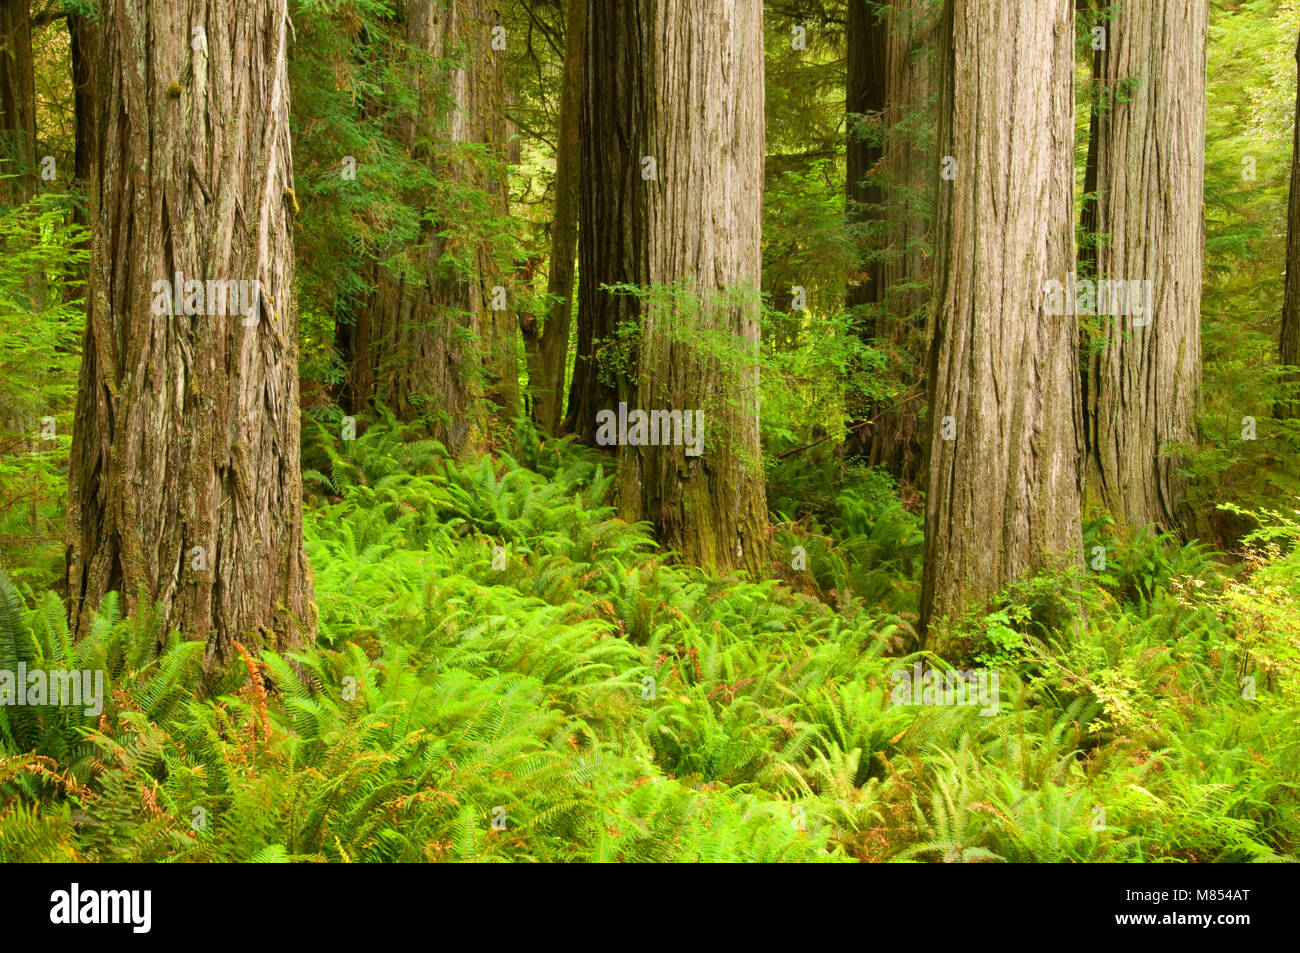 Coast redwood forest along Simpson-Reed Trail, Jedediah Smith Redwoods State Park, Redwood National Park, California - Stock Image